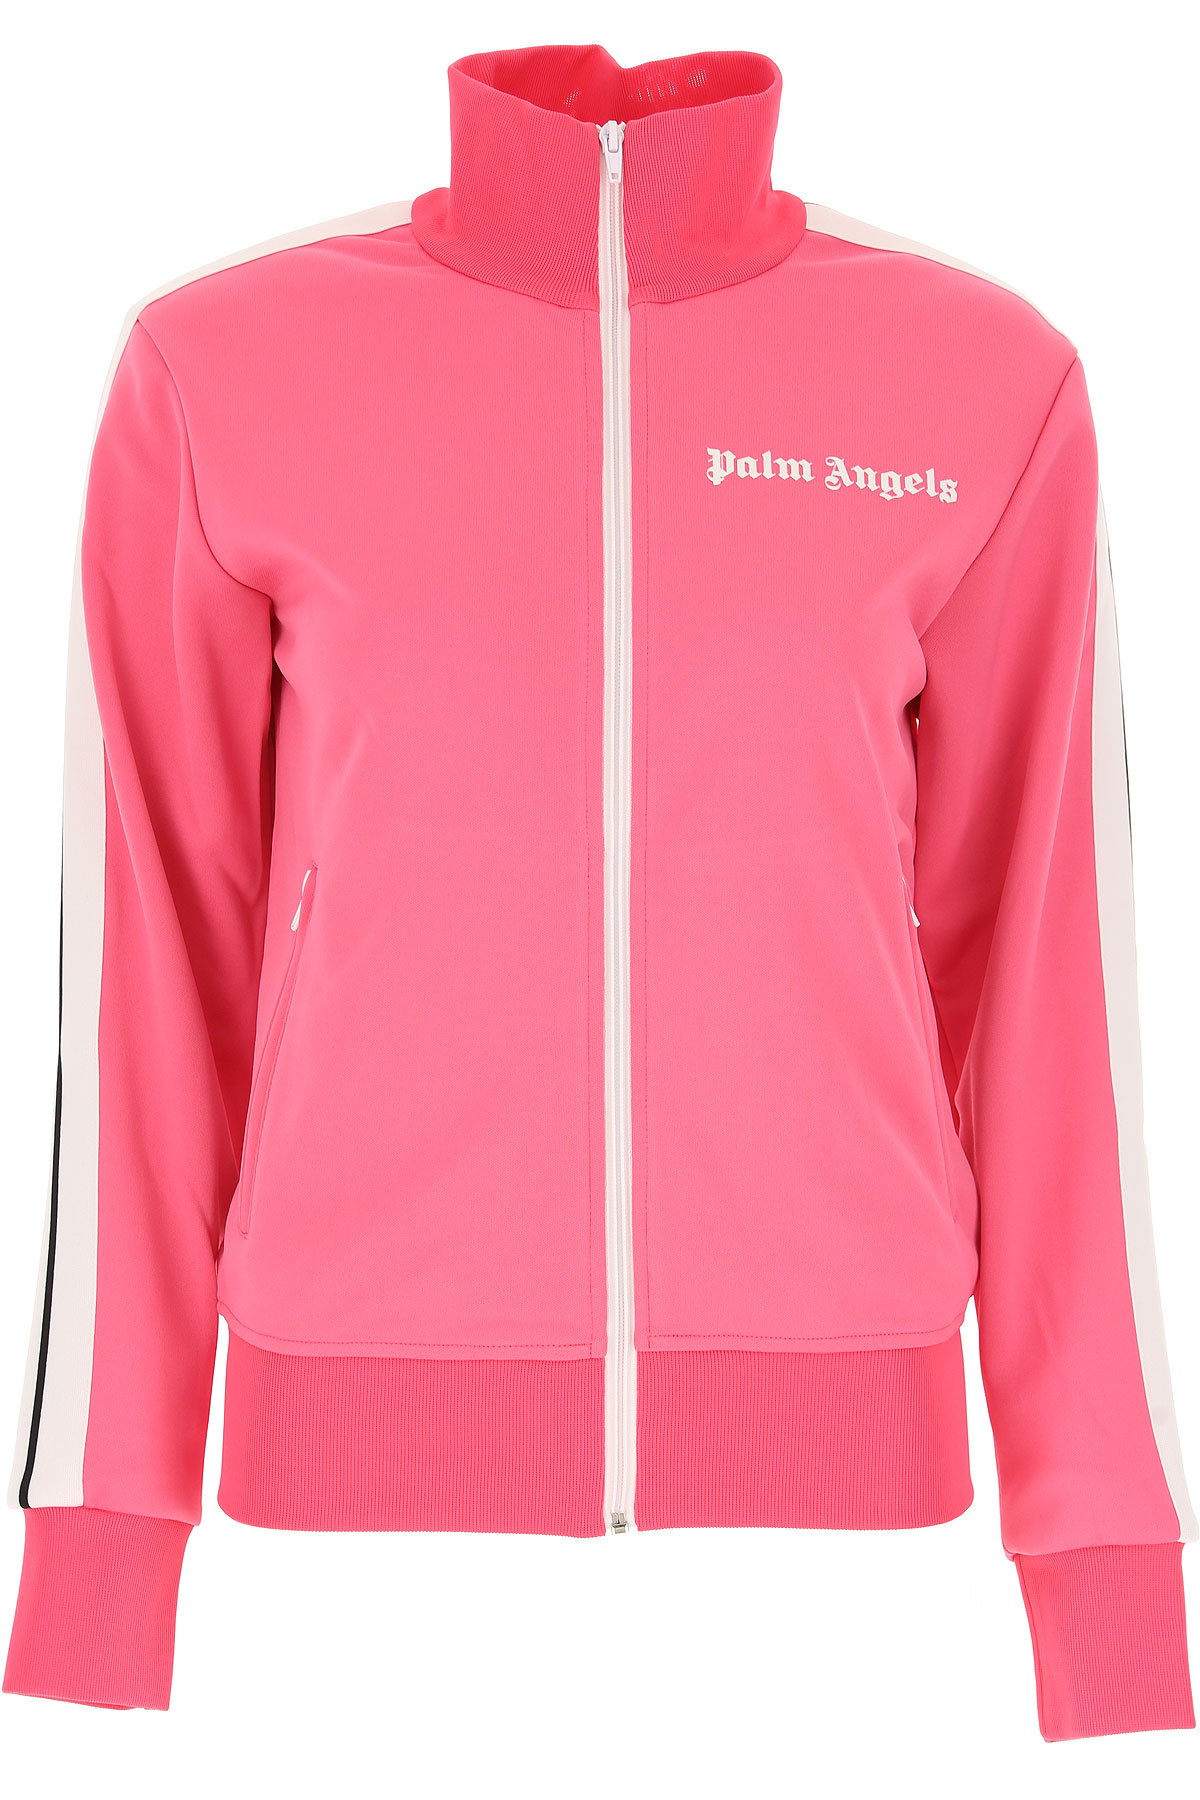 Image of Palm Angels Sweatshirt for Women, fuxia, polyester, 2017, S (IT 40) XS (IT 38)